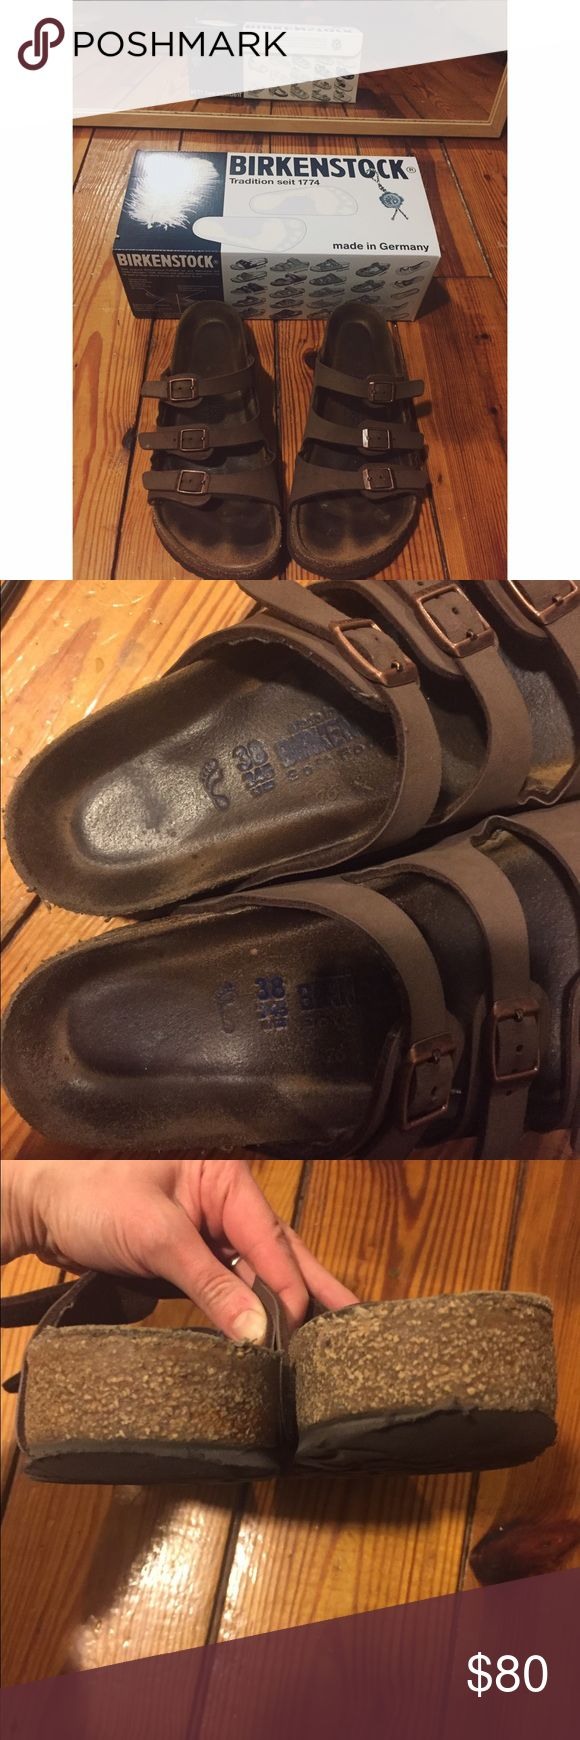 BIRKENSTOCK Florida size 7.5/38! Up for sale!  BIRKENSTOCK Florida sandals size 7.5/38  These are in great condition- I wore them last summer and broke them in so they're ready to wear and won't kill your feet!  There is a lot of life left in them-  Please ask any questions This is a comfy sandal only selling them bc I got a pair of Arizonas for my bday and don't like having multiple sandals.   ❤ Birkenstock Shoes Sandals